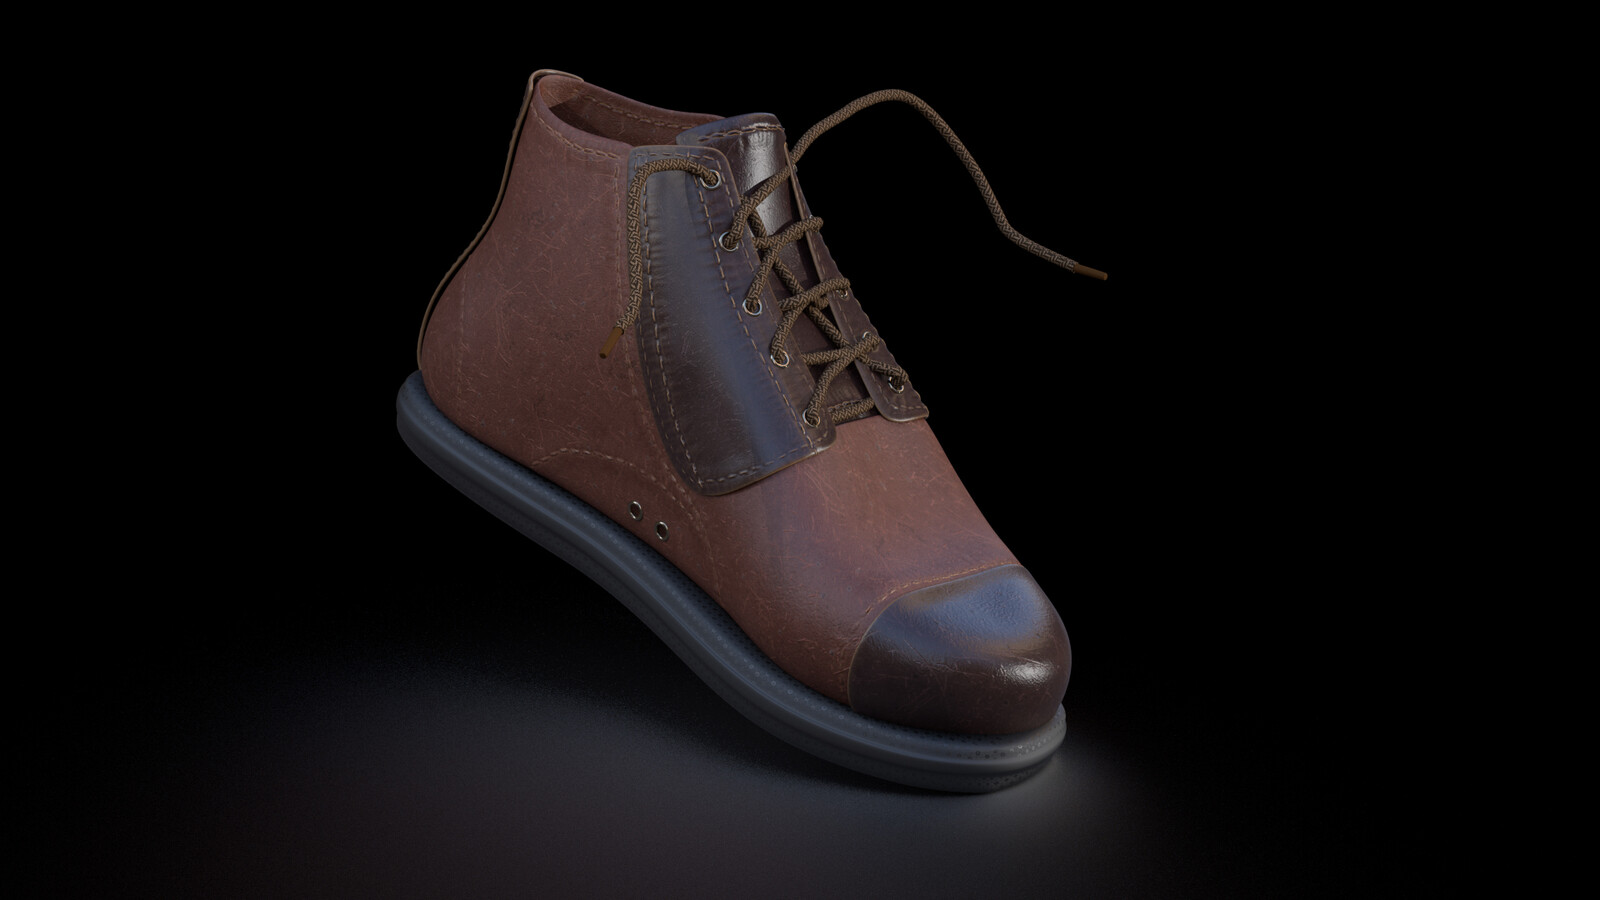 Men's ankle boot modelled in Zbrush and rendered in Cinema 4D and Redshift